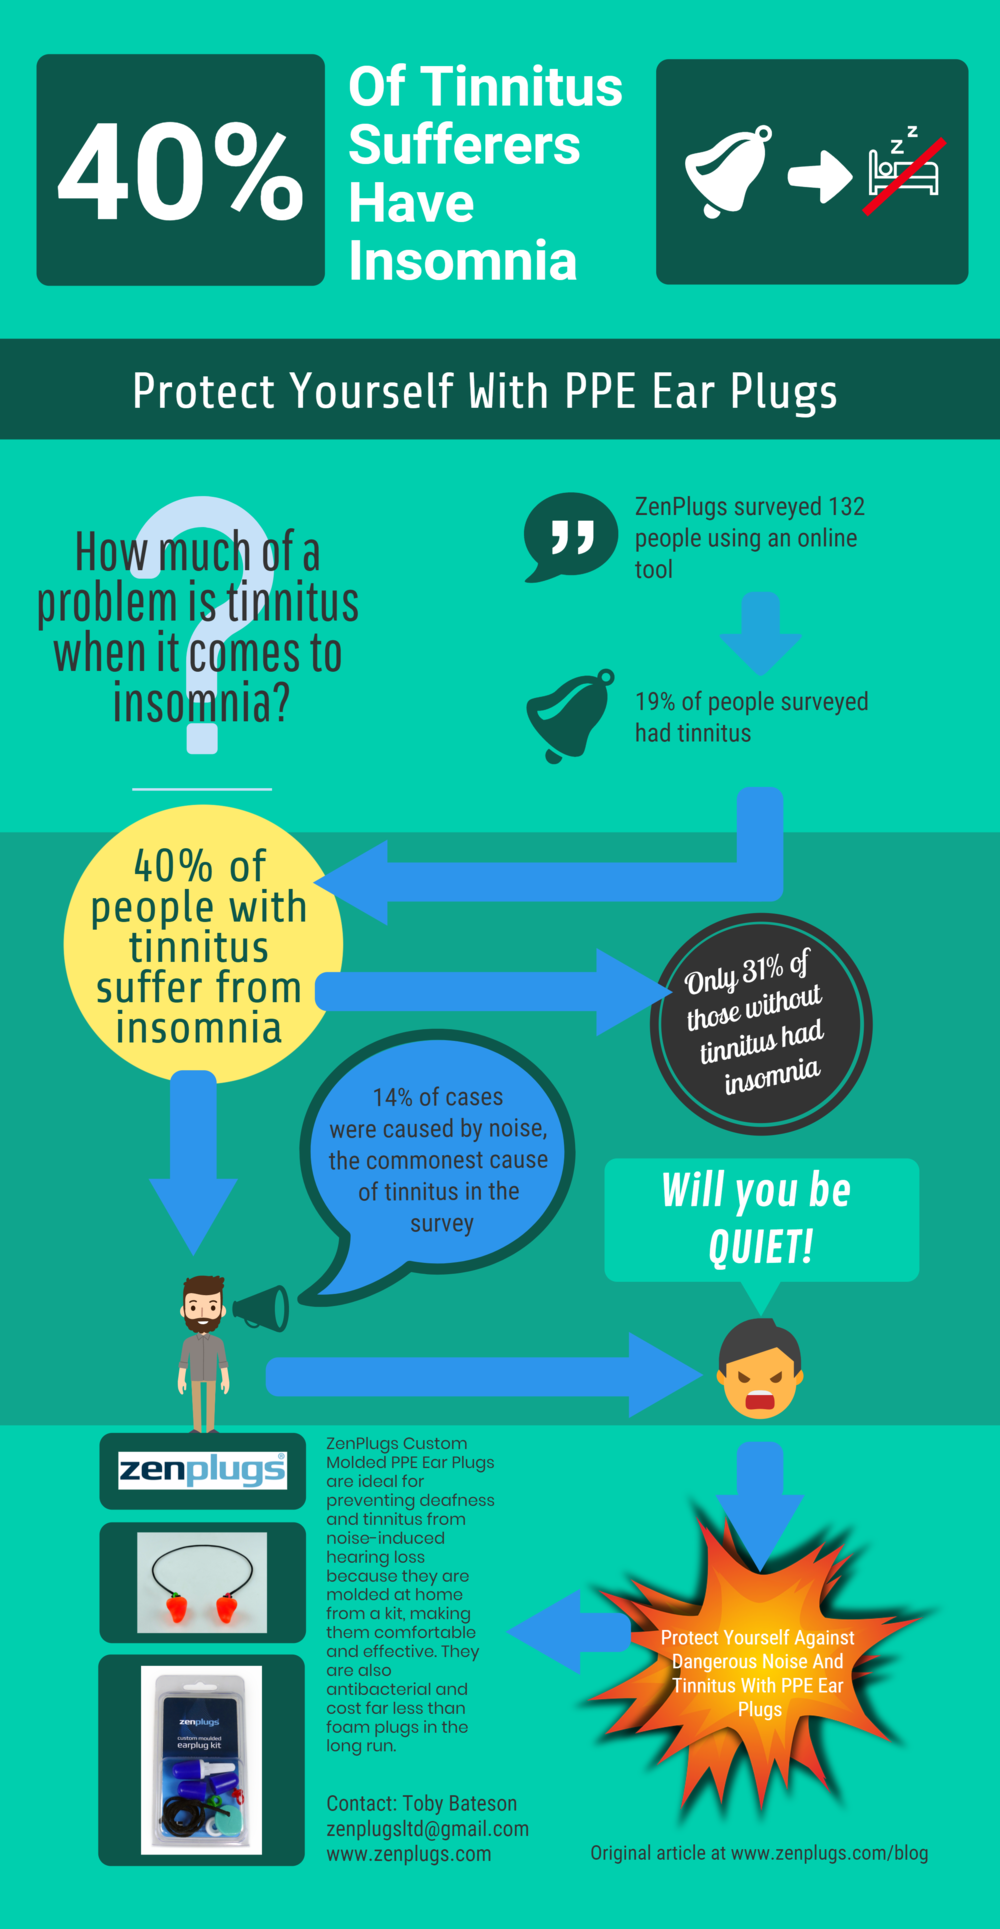 Warning - Tinnitus Causes Sleep Loss In 40% Of Sufferers; Wear PPE Ear Plugs [Infographic]